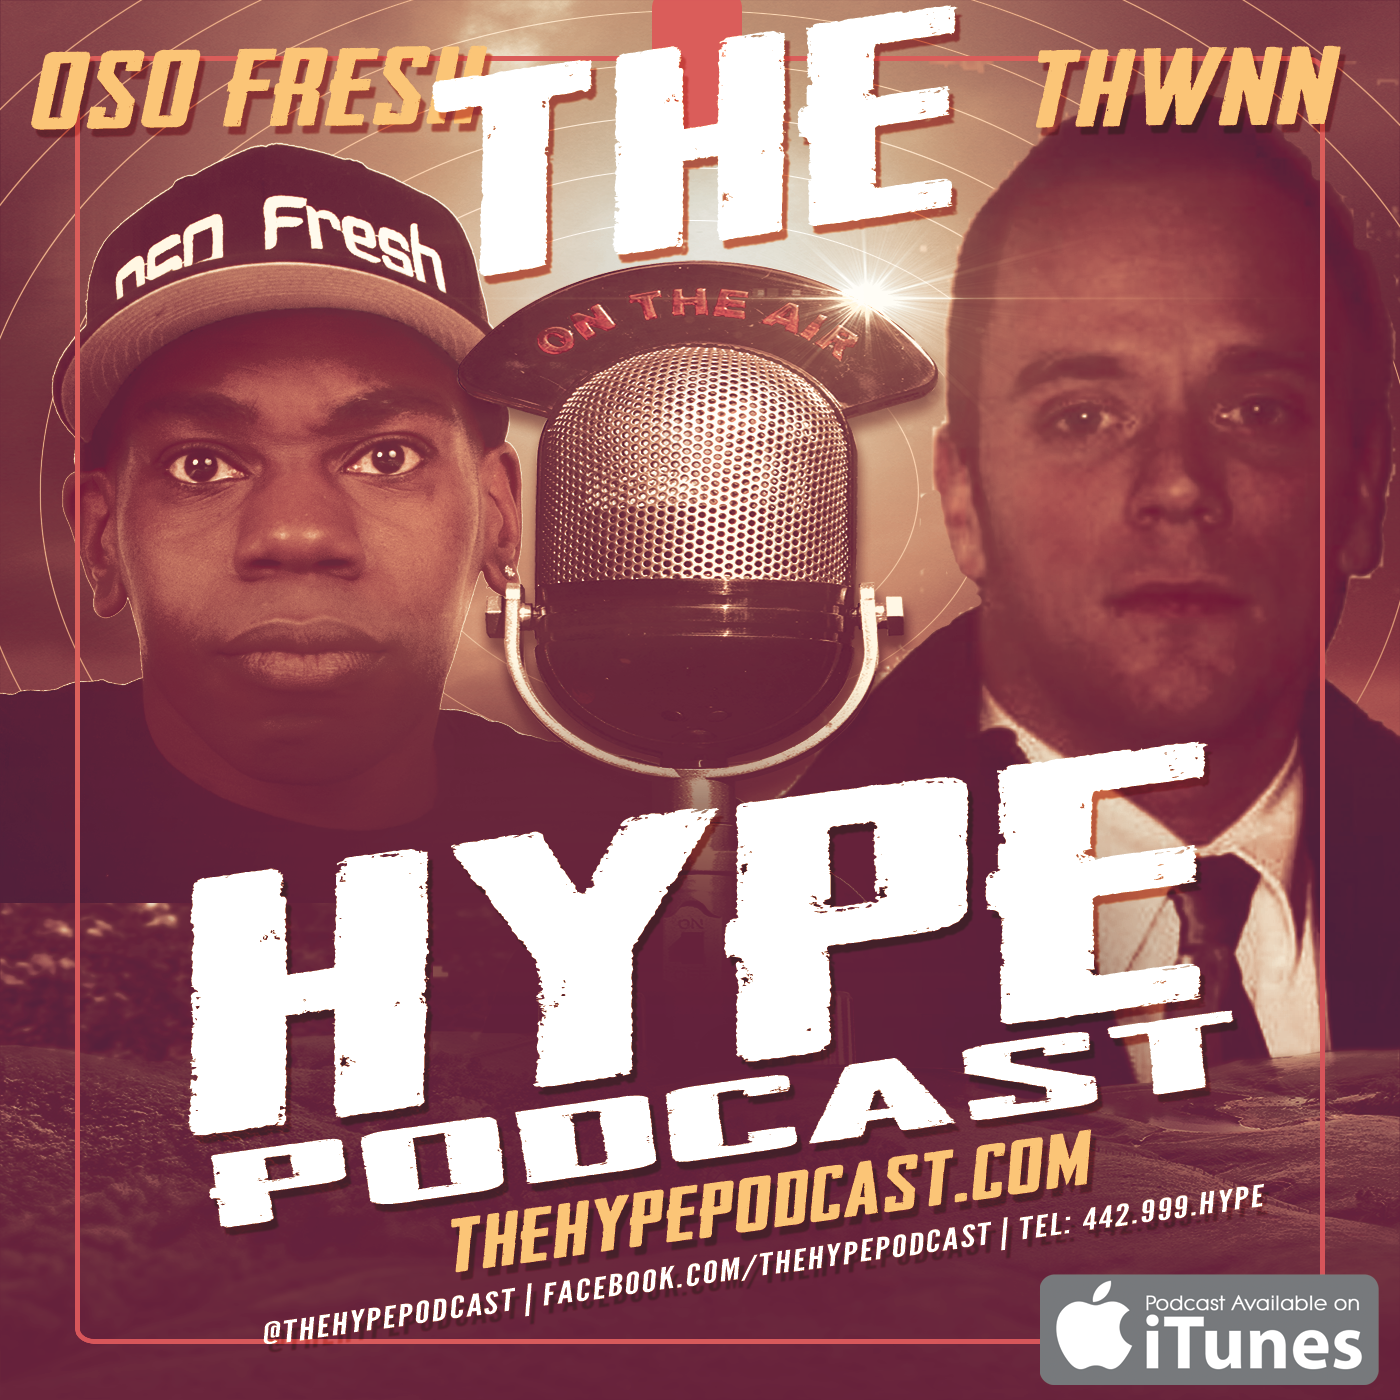 Artwork for The hype podcast episode #127 Snaking the national treasure just be Clause Mutherf------ on a plane